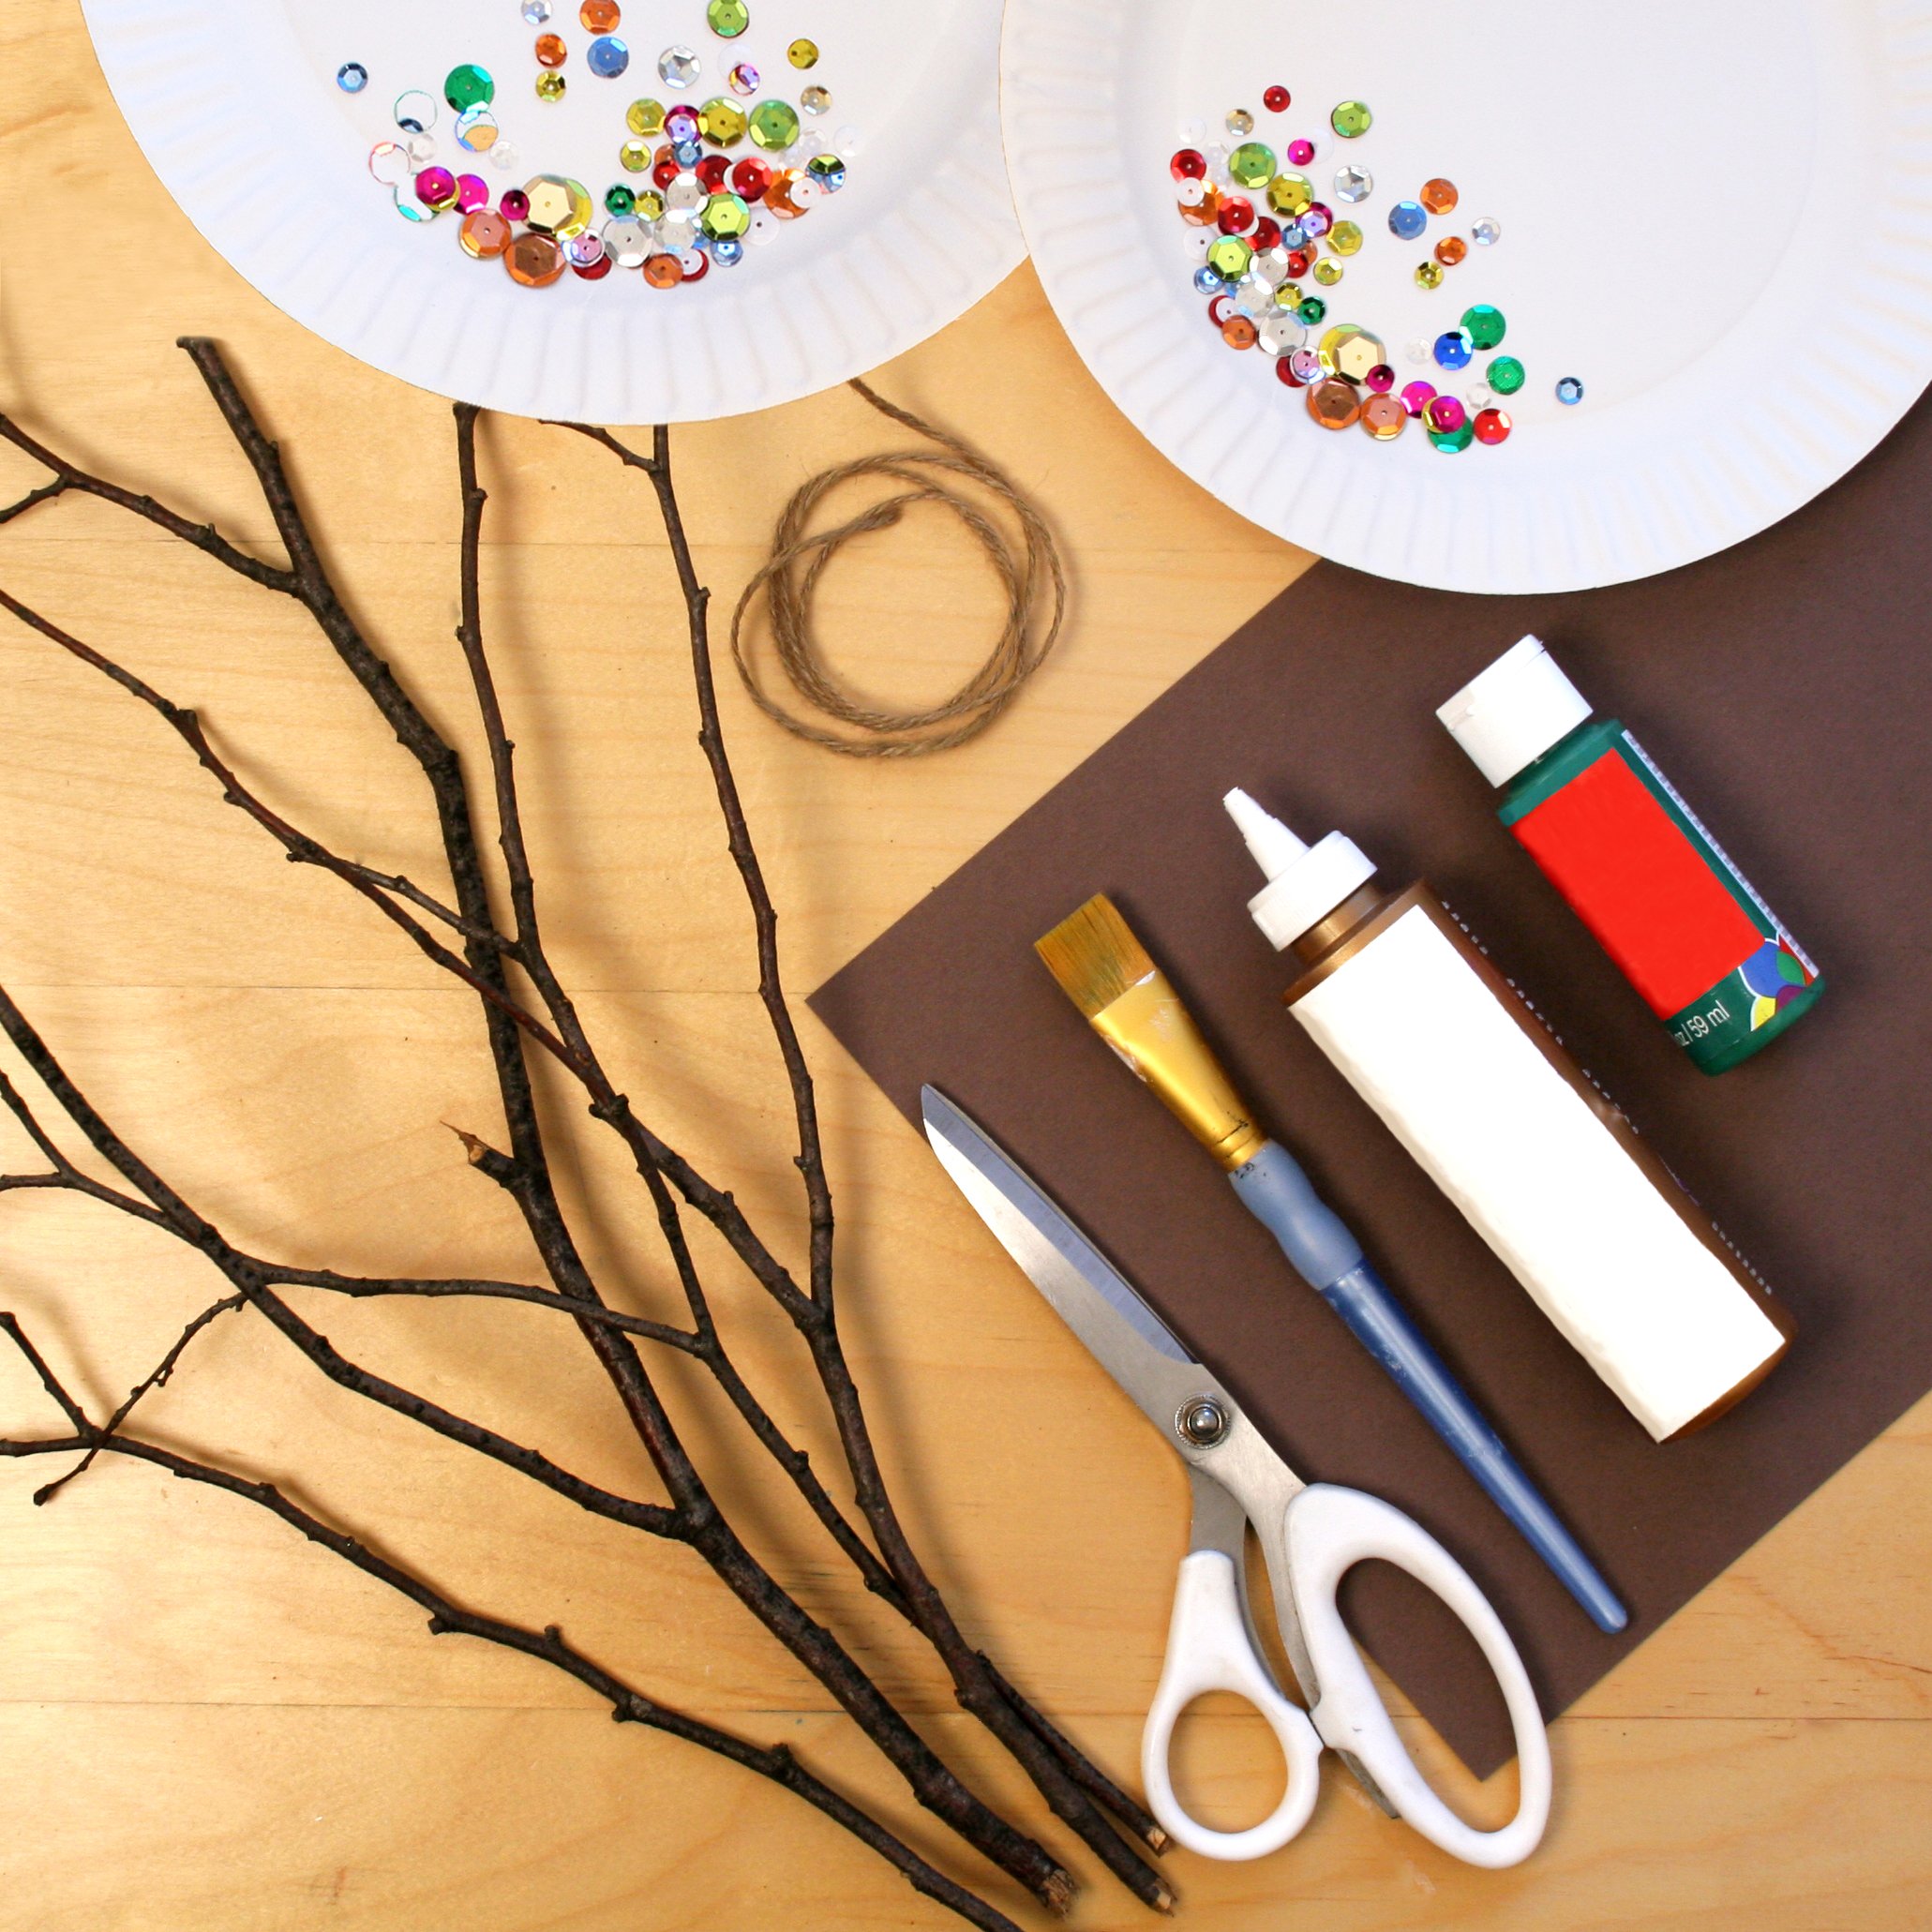 Christmas tree ornament craft materials